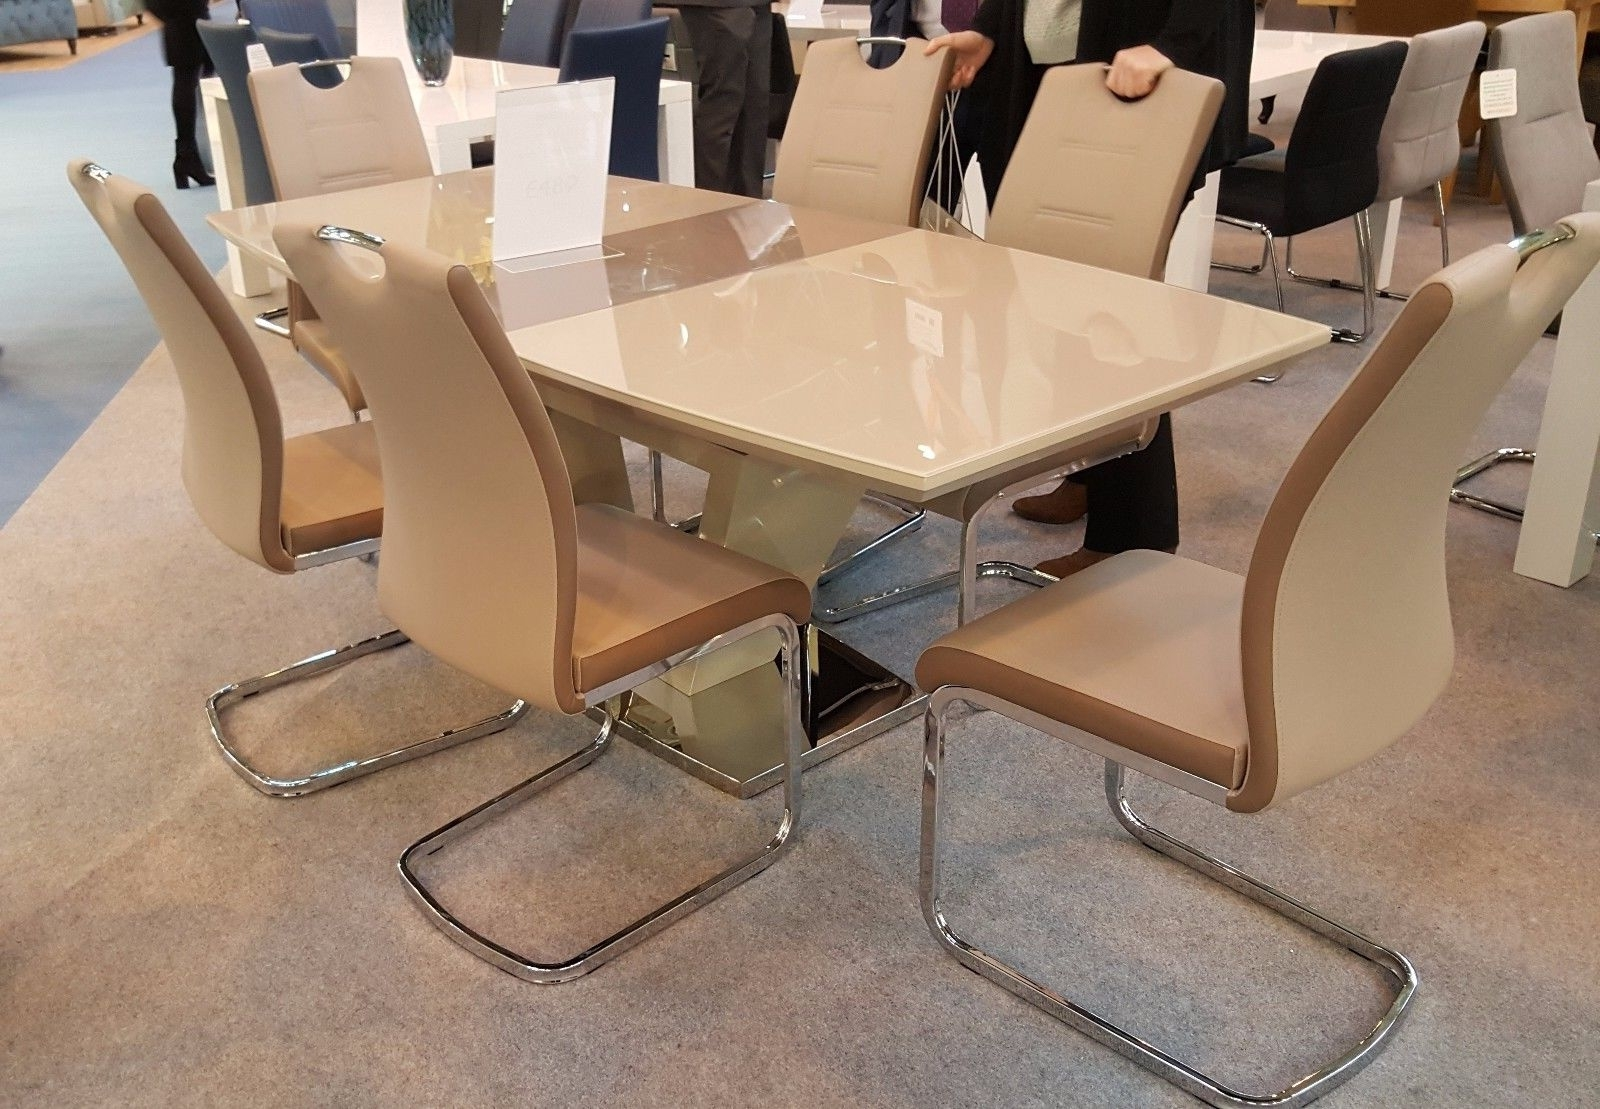 New Aspen Cream/latte High Gloss/glass 160 200Cm Ext Dining Table + Regarding Newest Aspen Dining Tables (View 8 of 25)